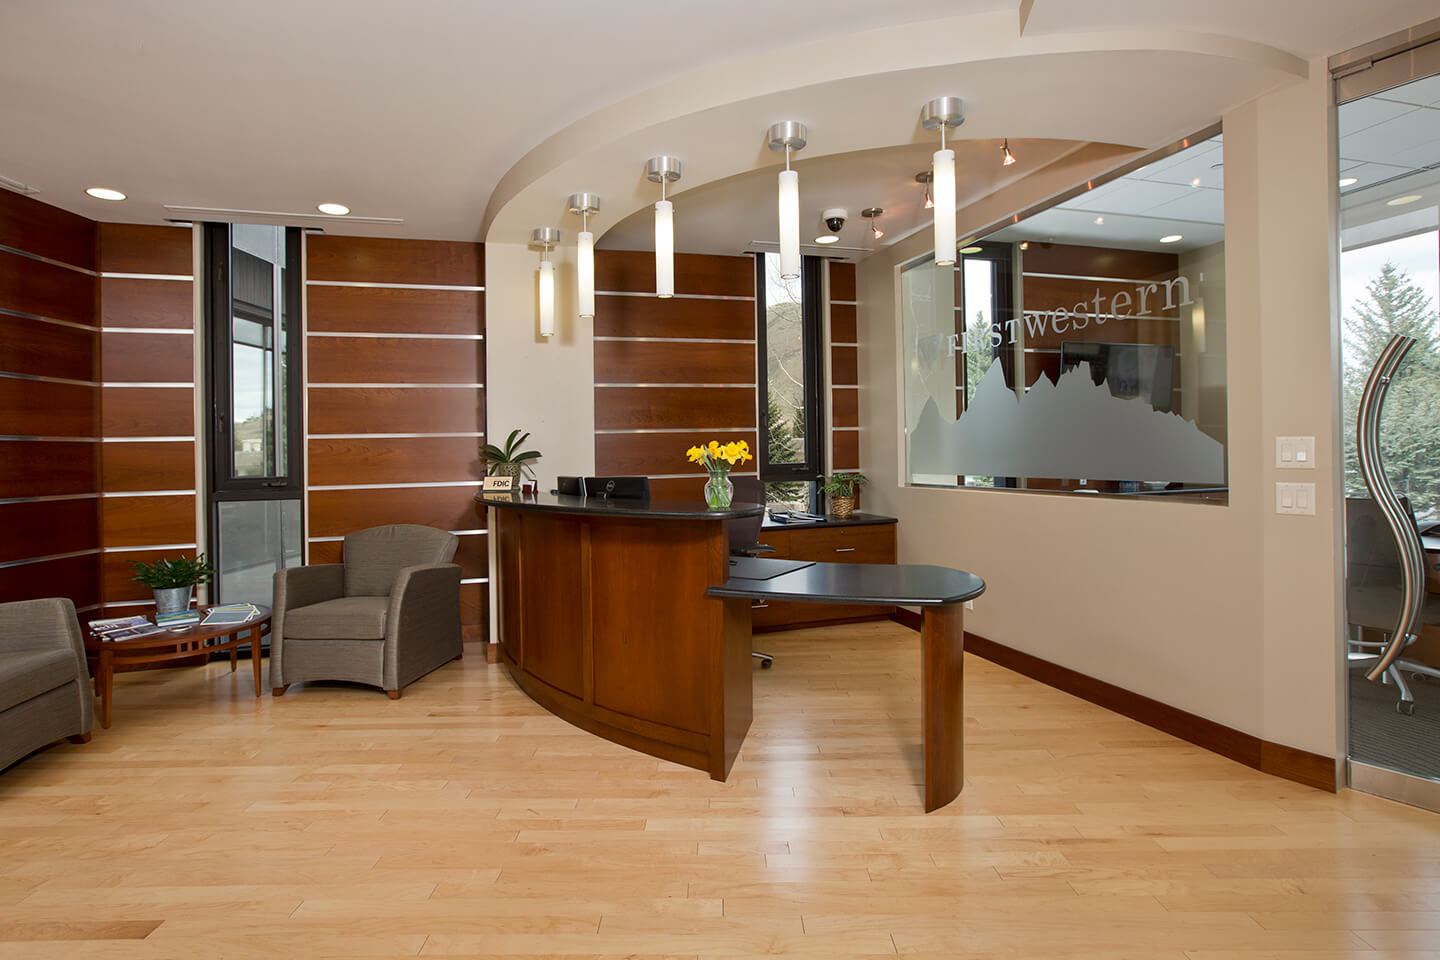 Reception with etched glass window